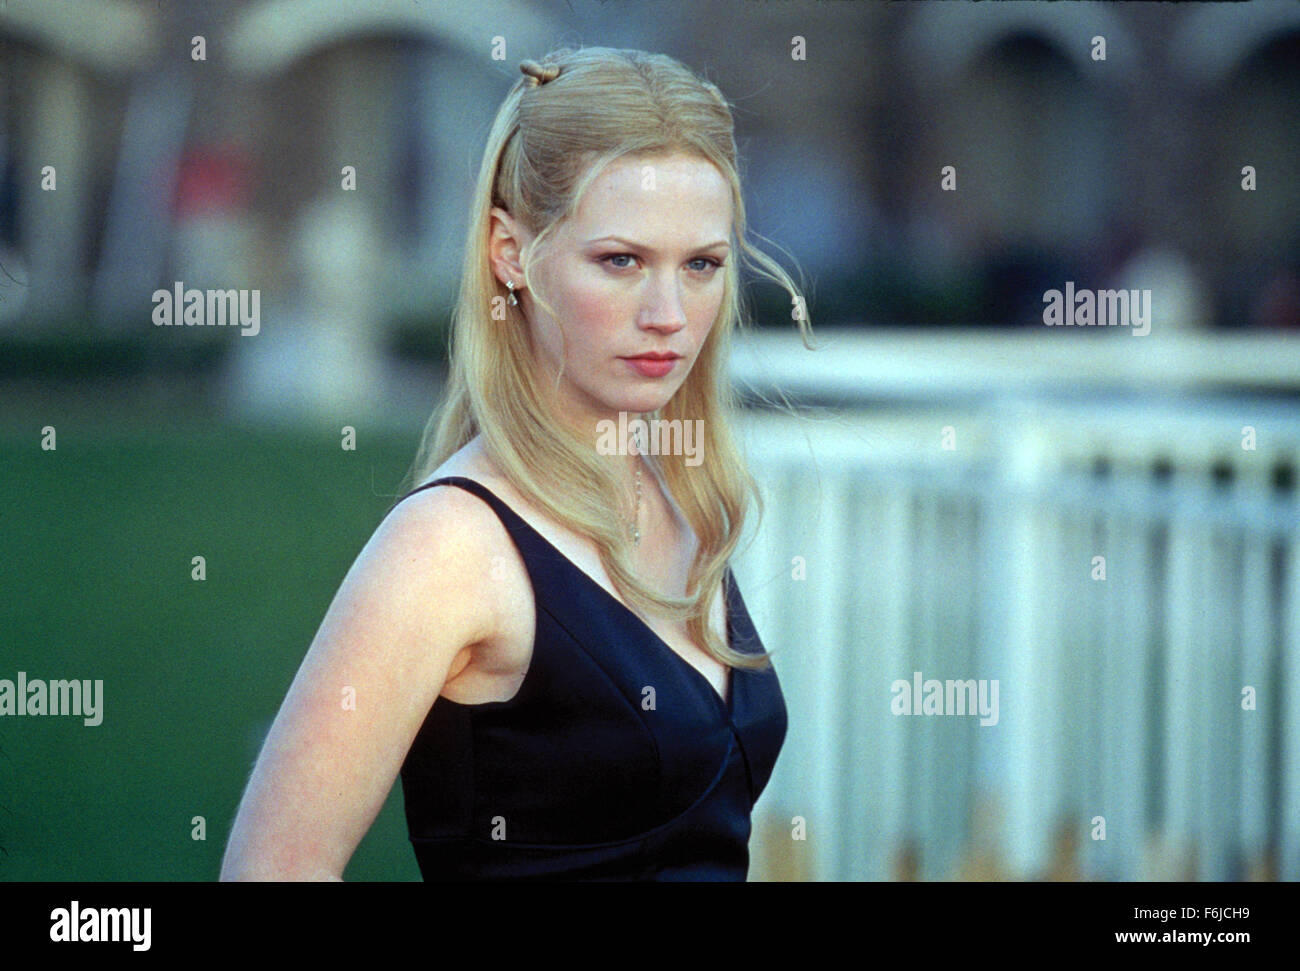 American Wedding Full Movie.January Jones As Cadence Flaherty Film Title American Wedding Stock